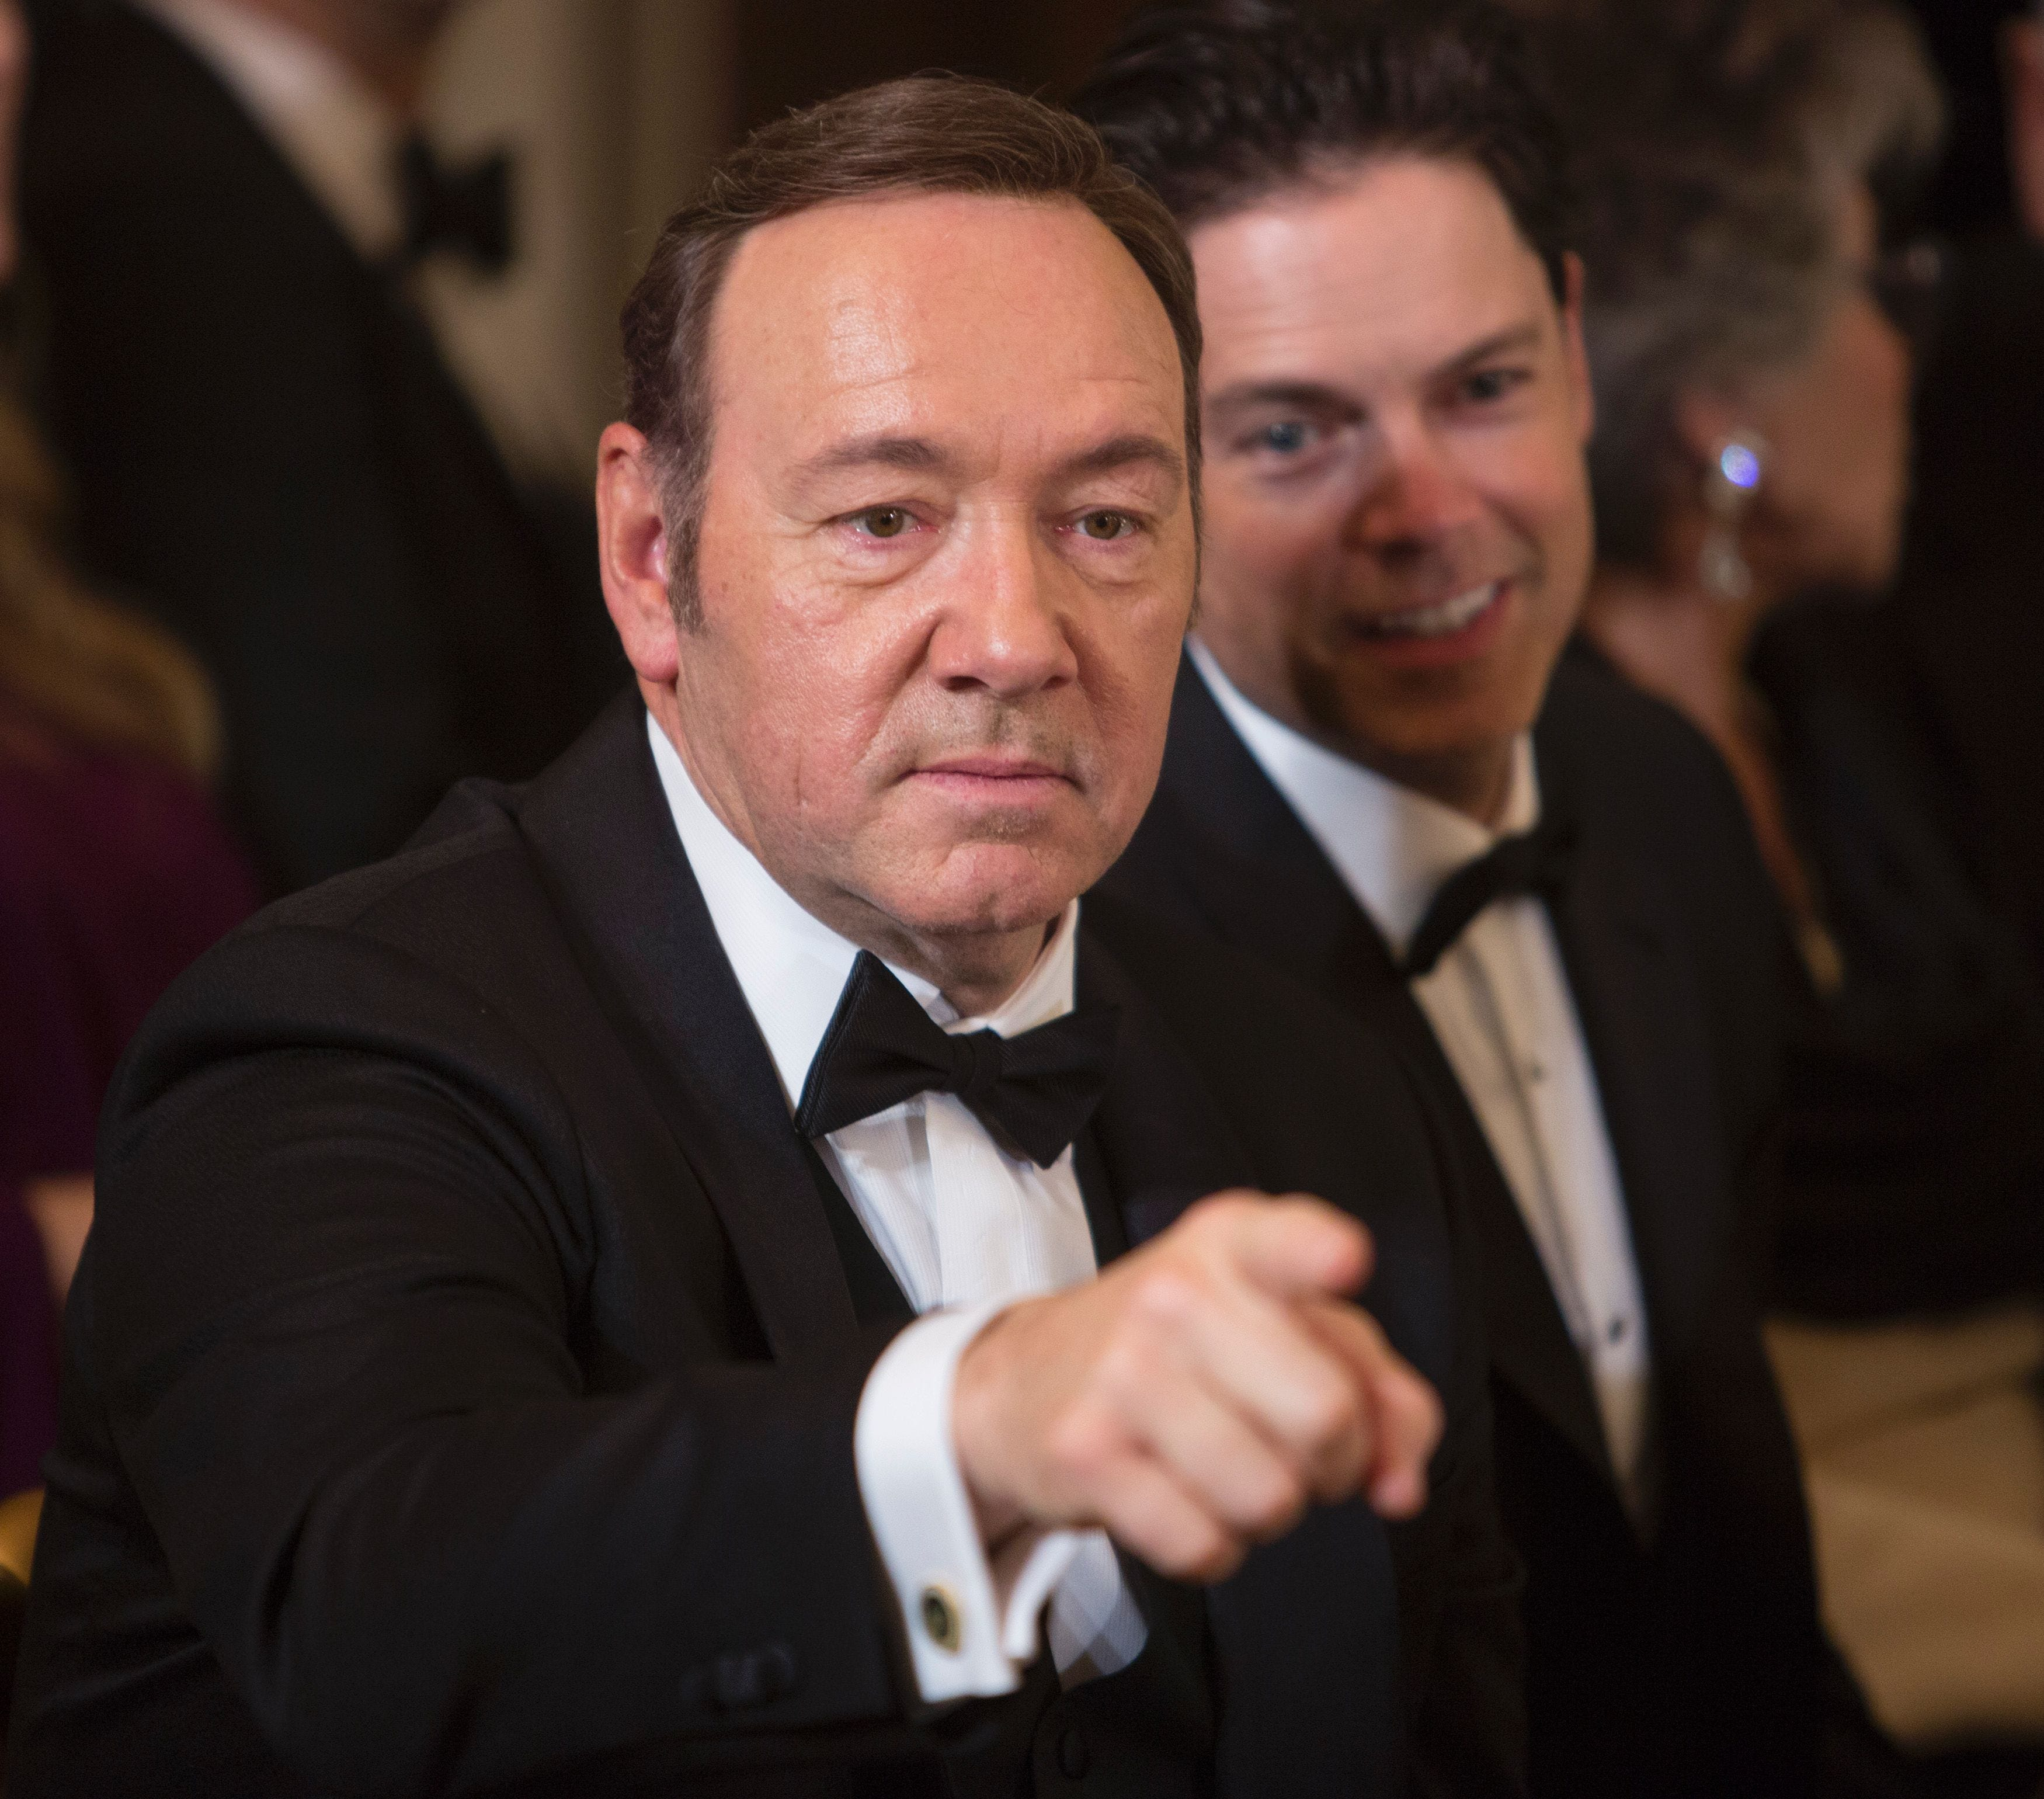 House of Cards extends production hiatus